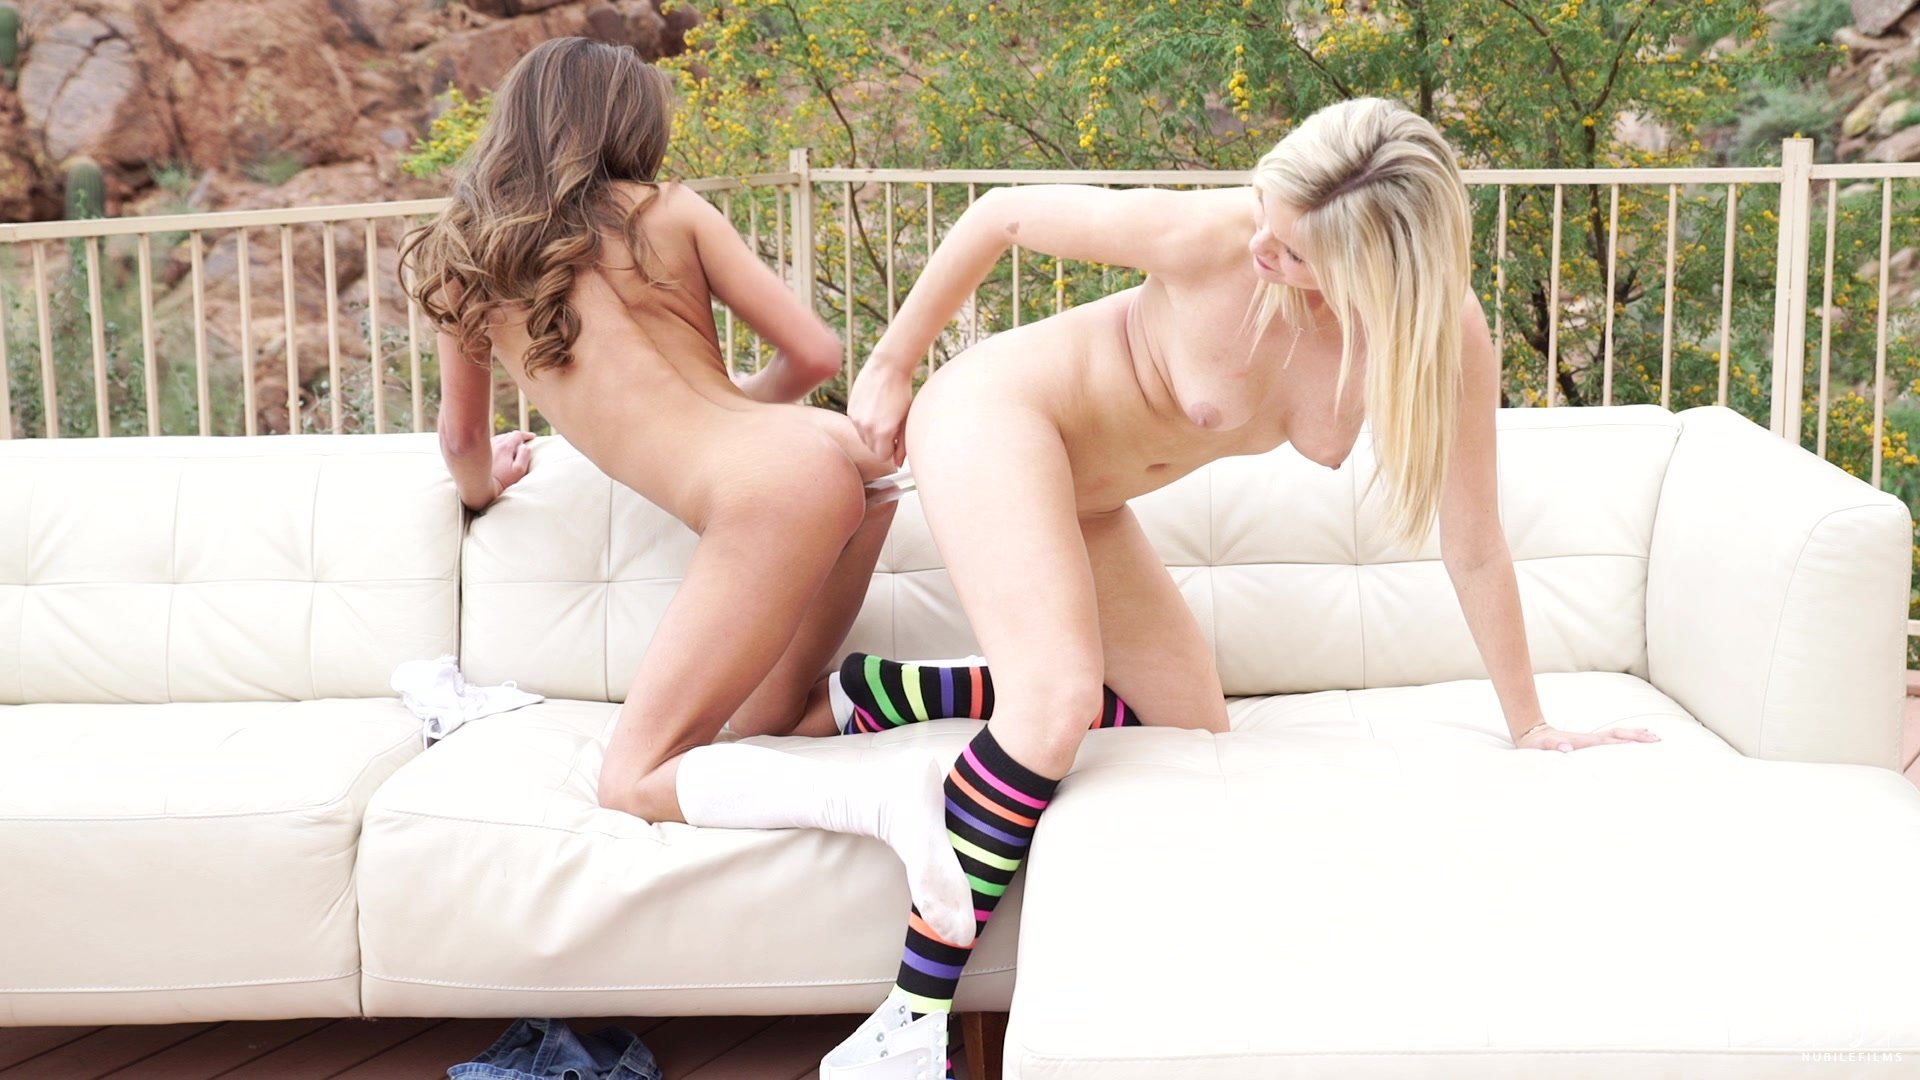 Cheat wifexx young and busty lesbians